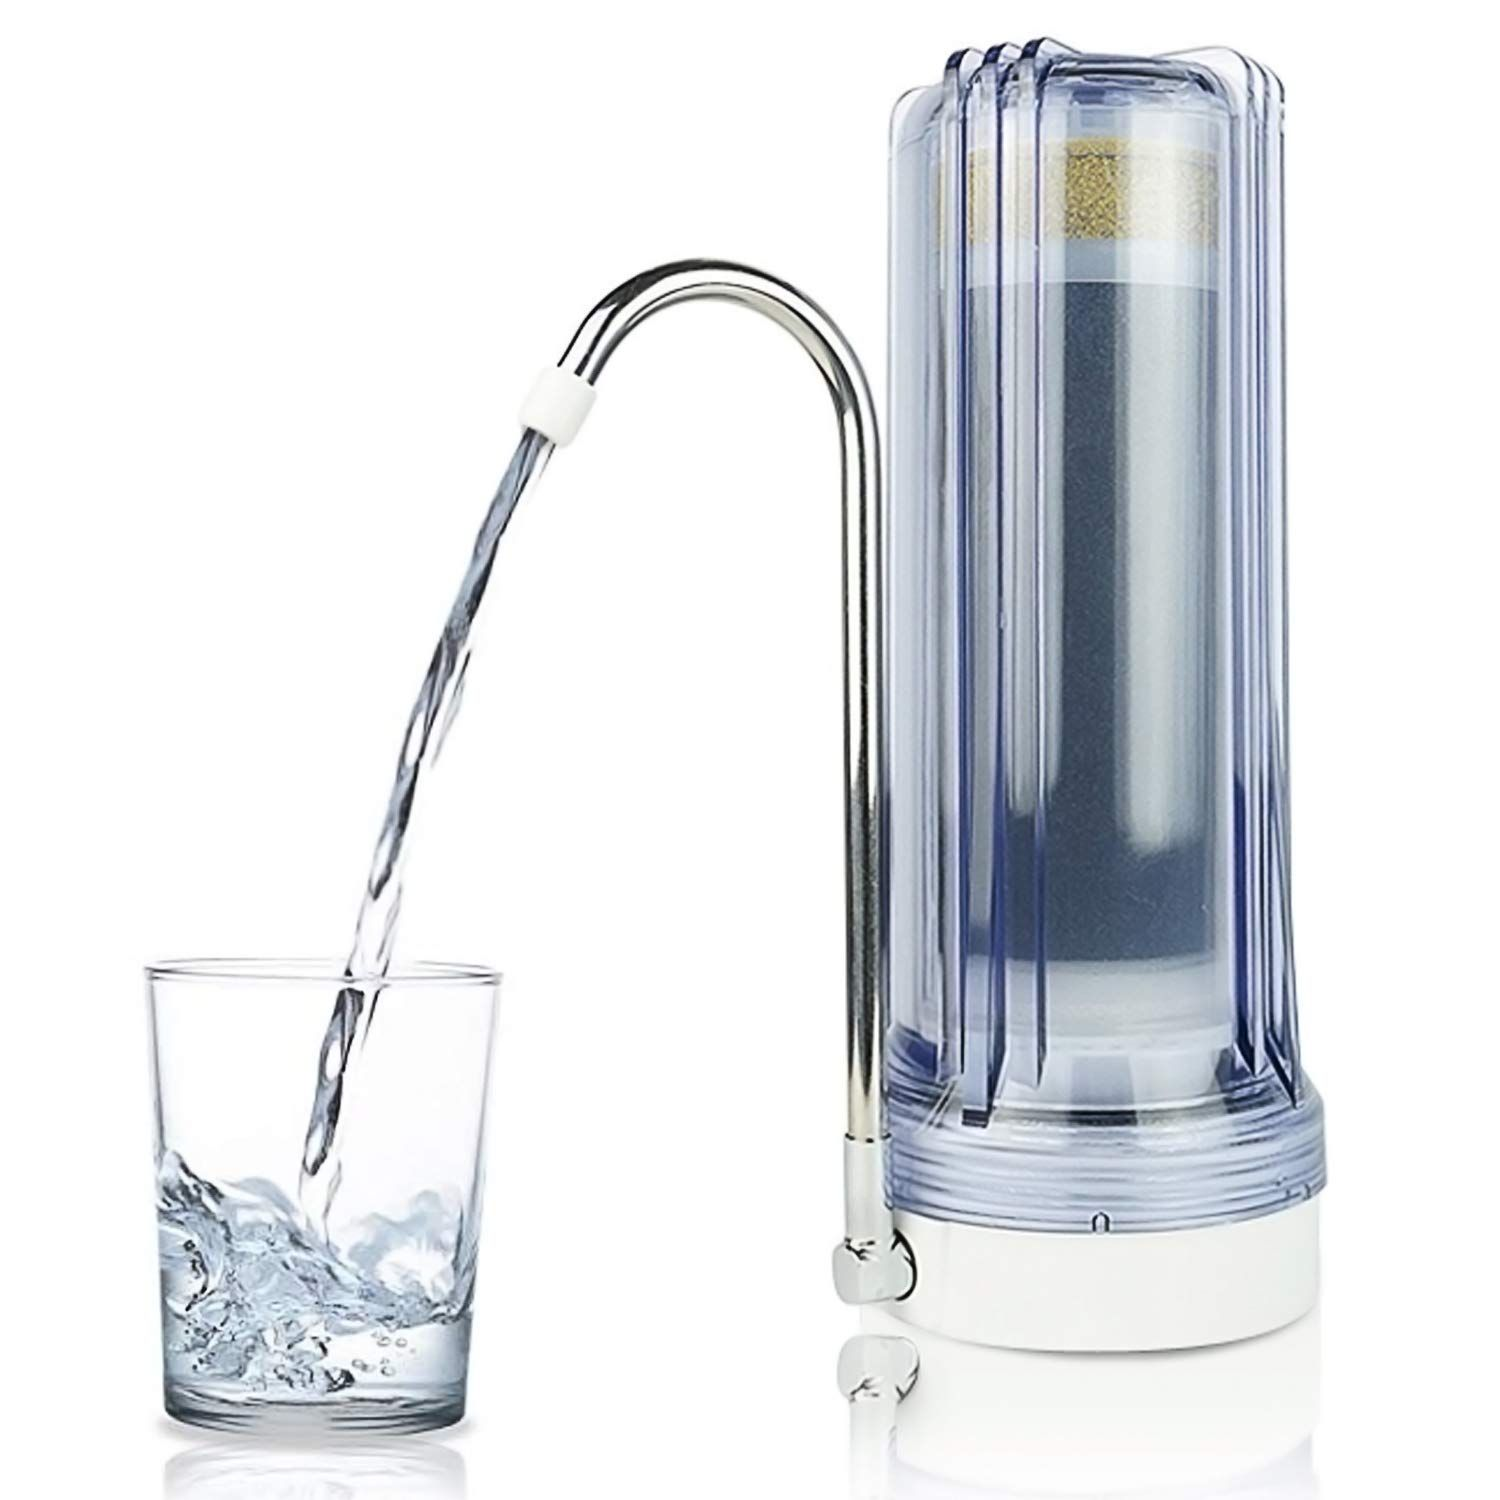 Apex Mr 1030 Countertop Water Filter Clear Phonecases